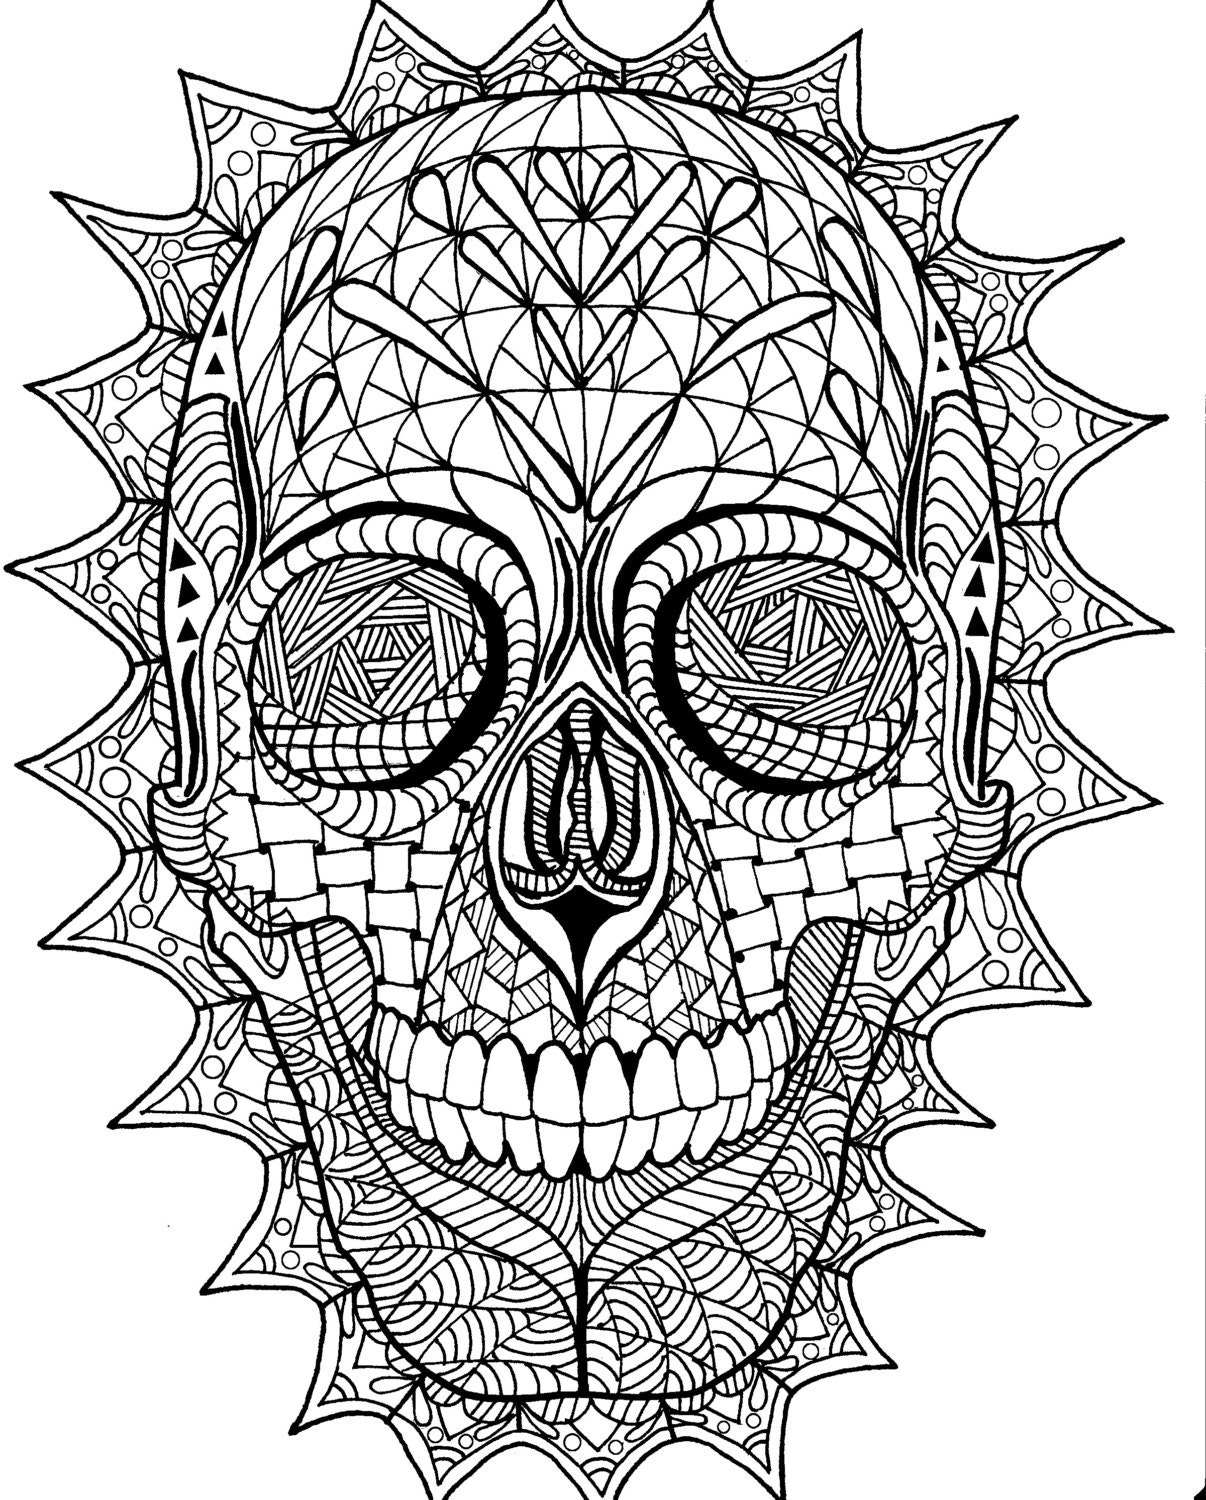 Coloring page zentangle sugar skull digital coloring pdf Electronic coloring book for adults